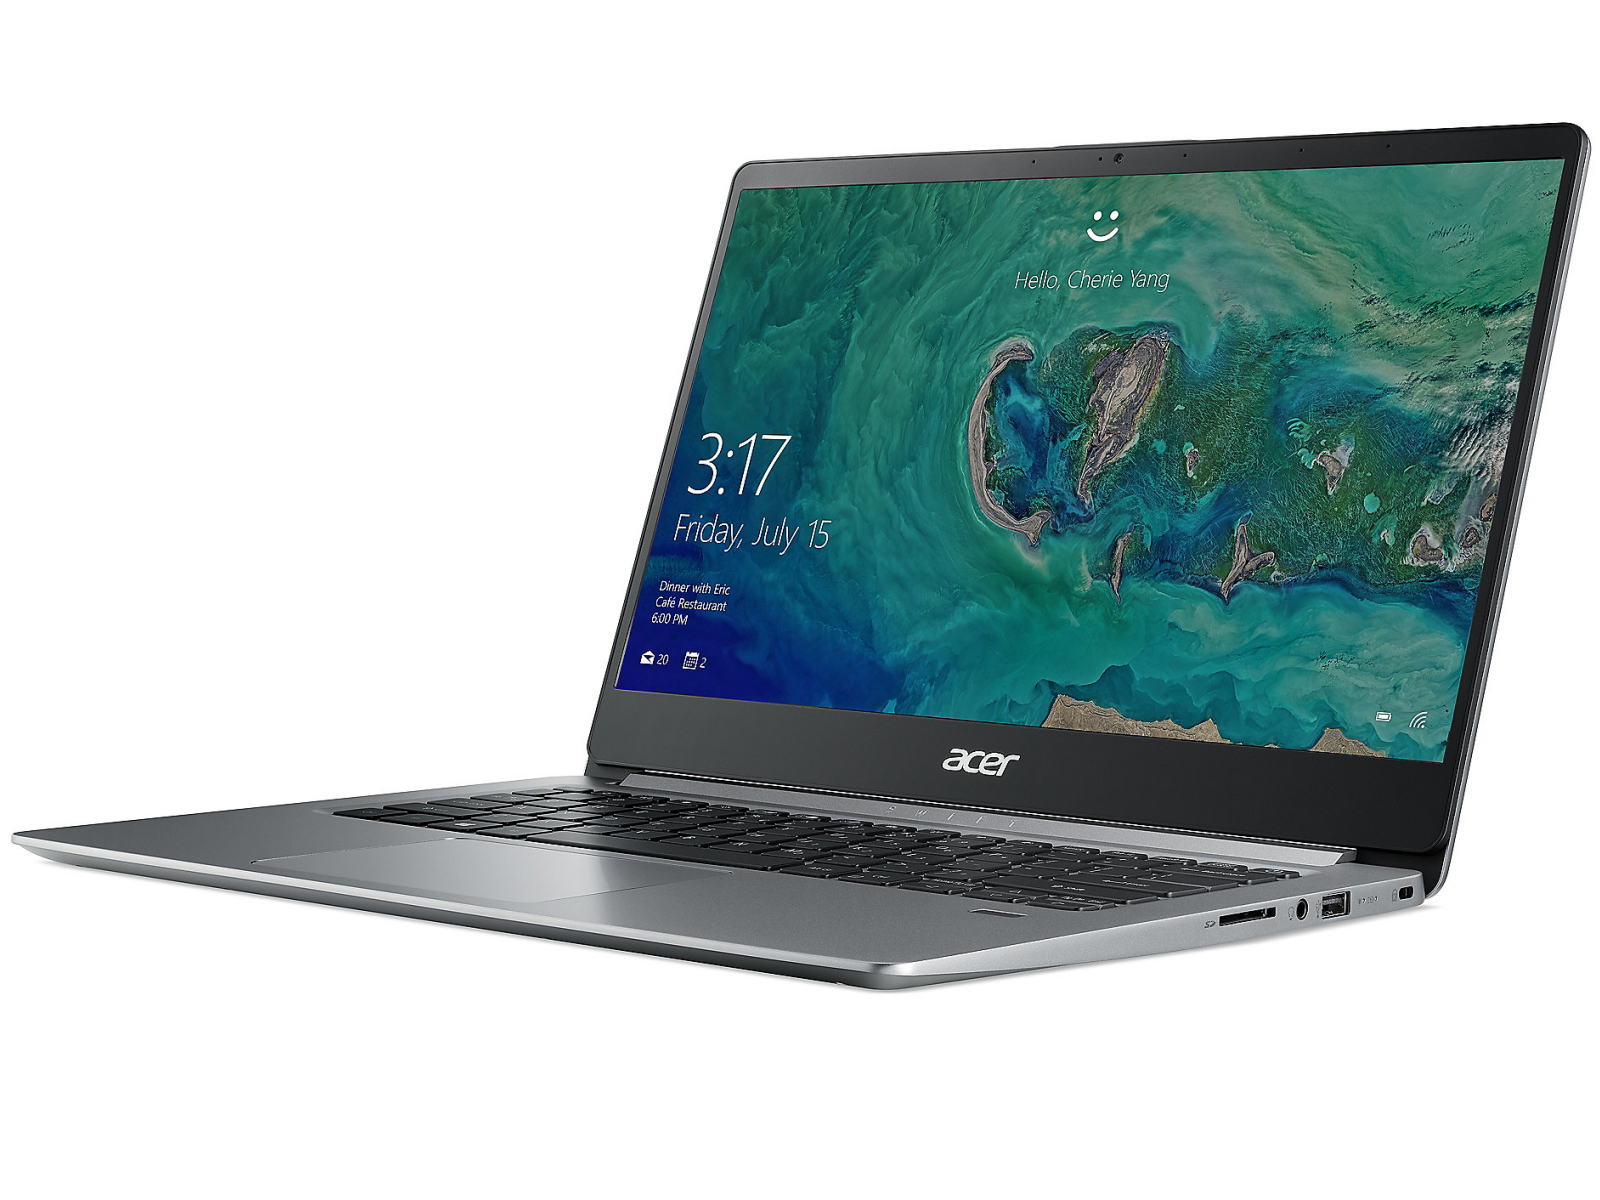 Acer Swift 1 SF114-32 (N5000, SSD, FHD) Laptop Review - NotebookCheck.net Reviews